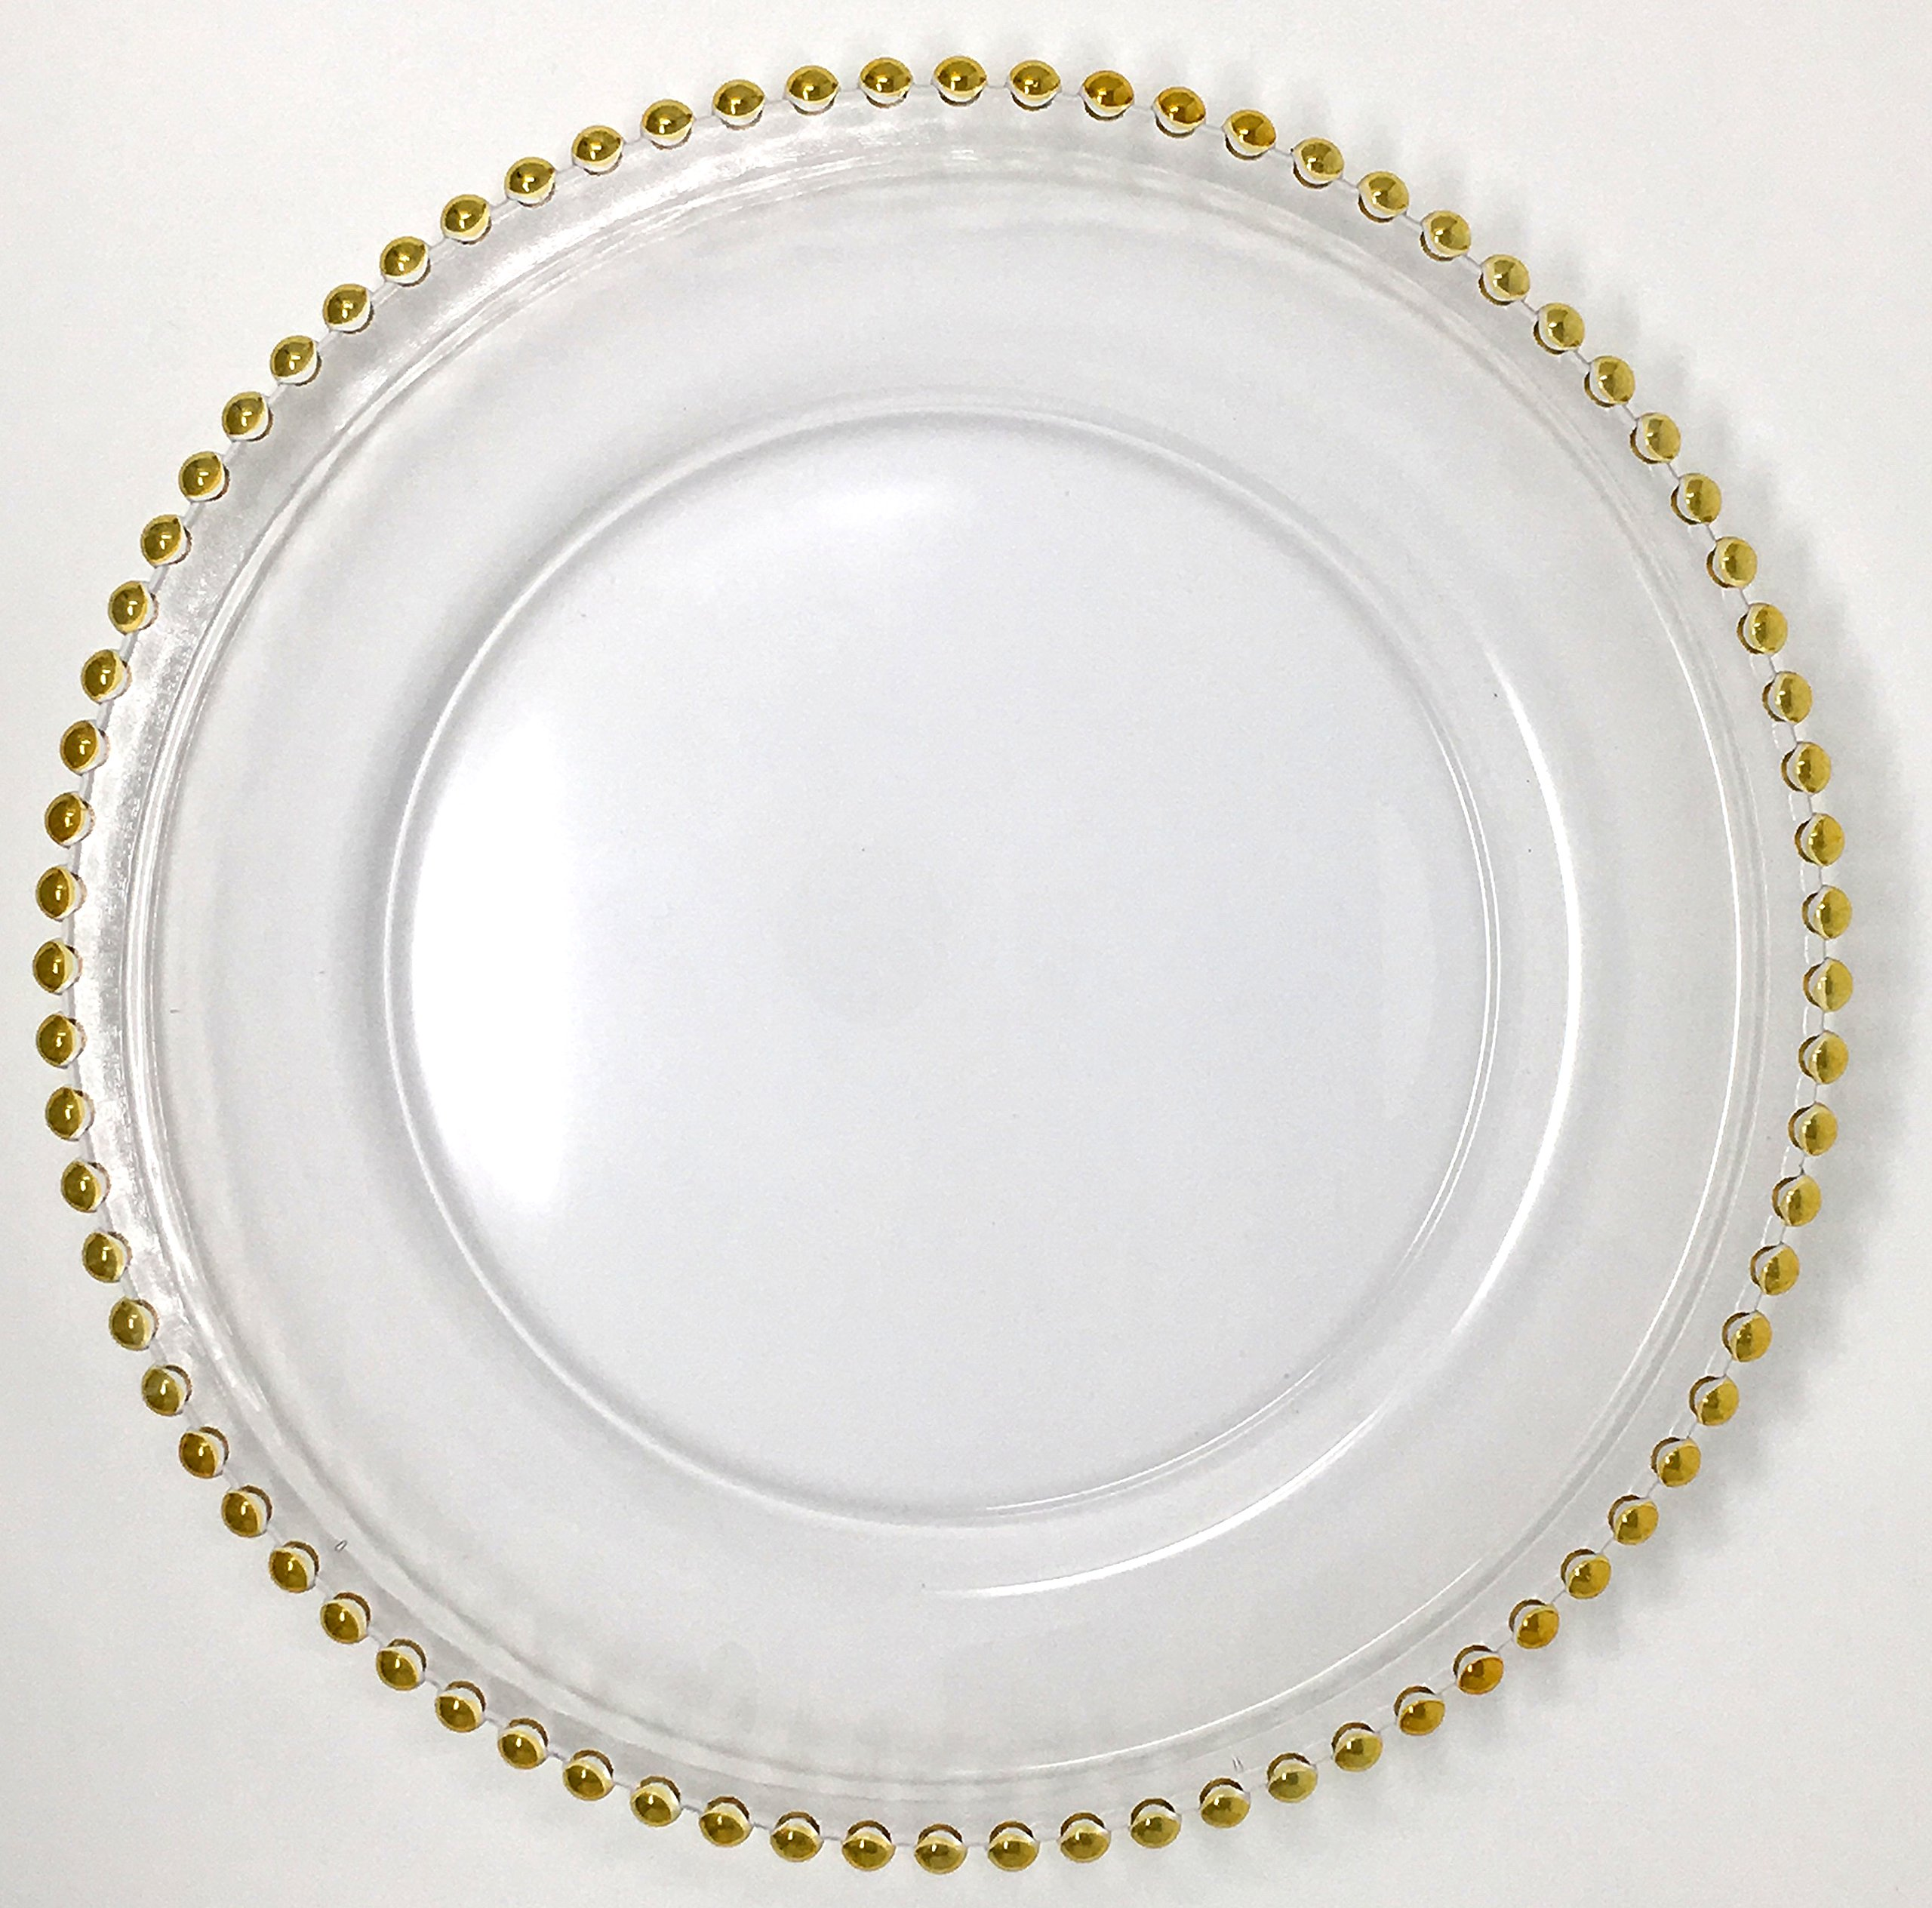 Spectacular Glass Dinnerware Formal 13-Inch Gold Beaded Rim Clear Glass Charger Plate Wedding Party Dinner Modern Appeal Glass Plates (24)